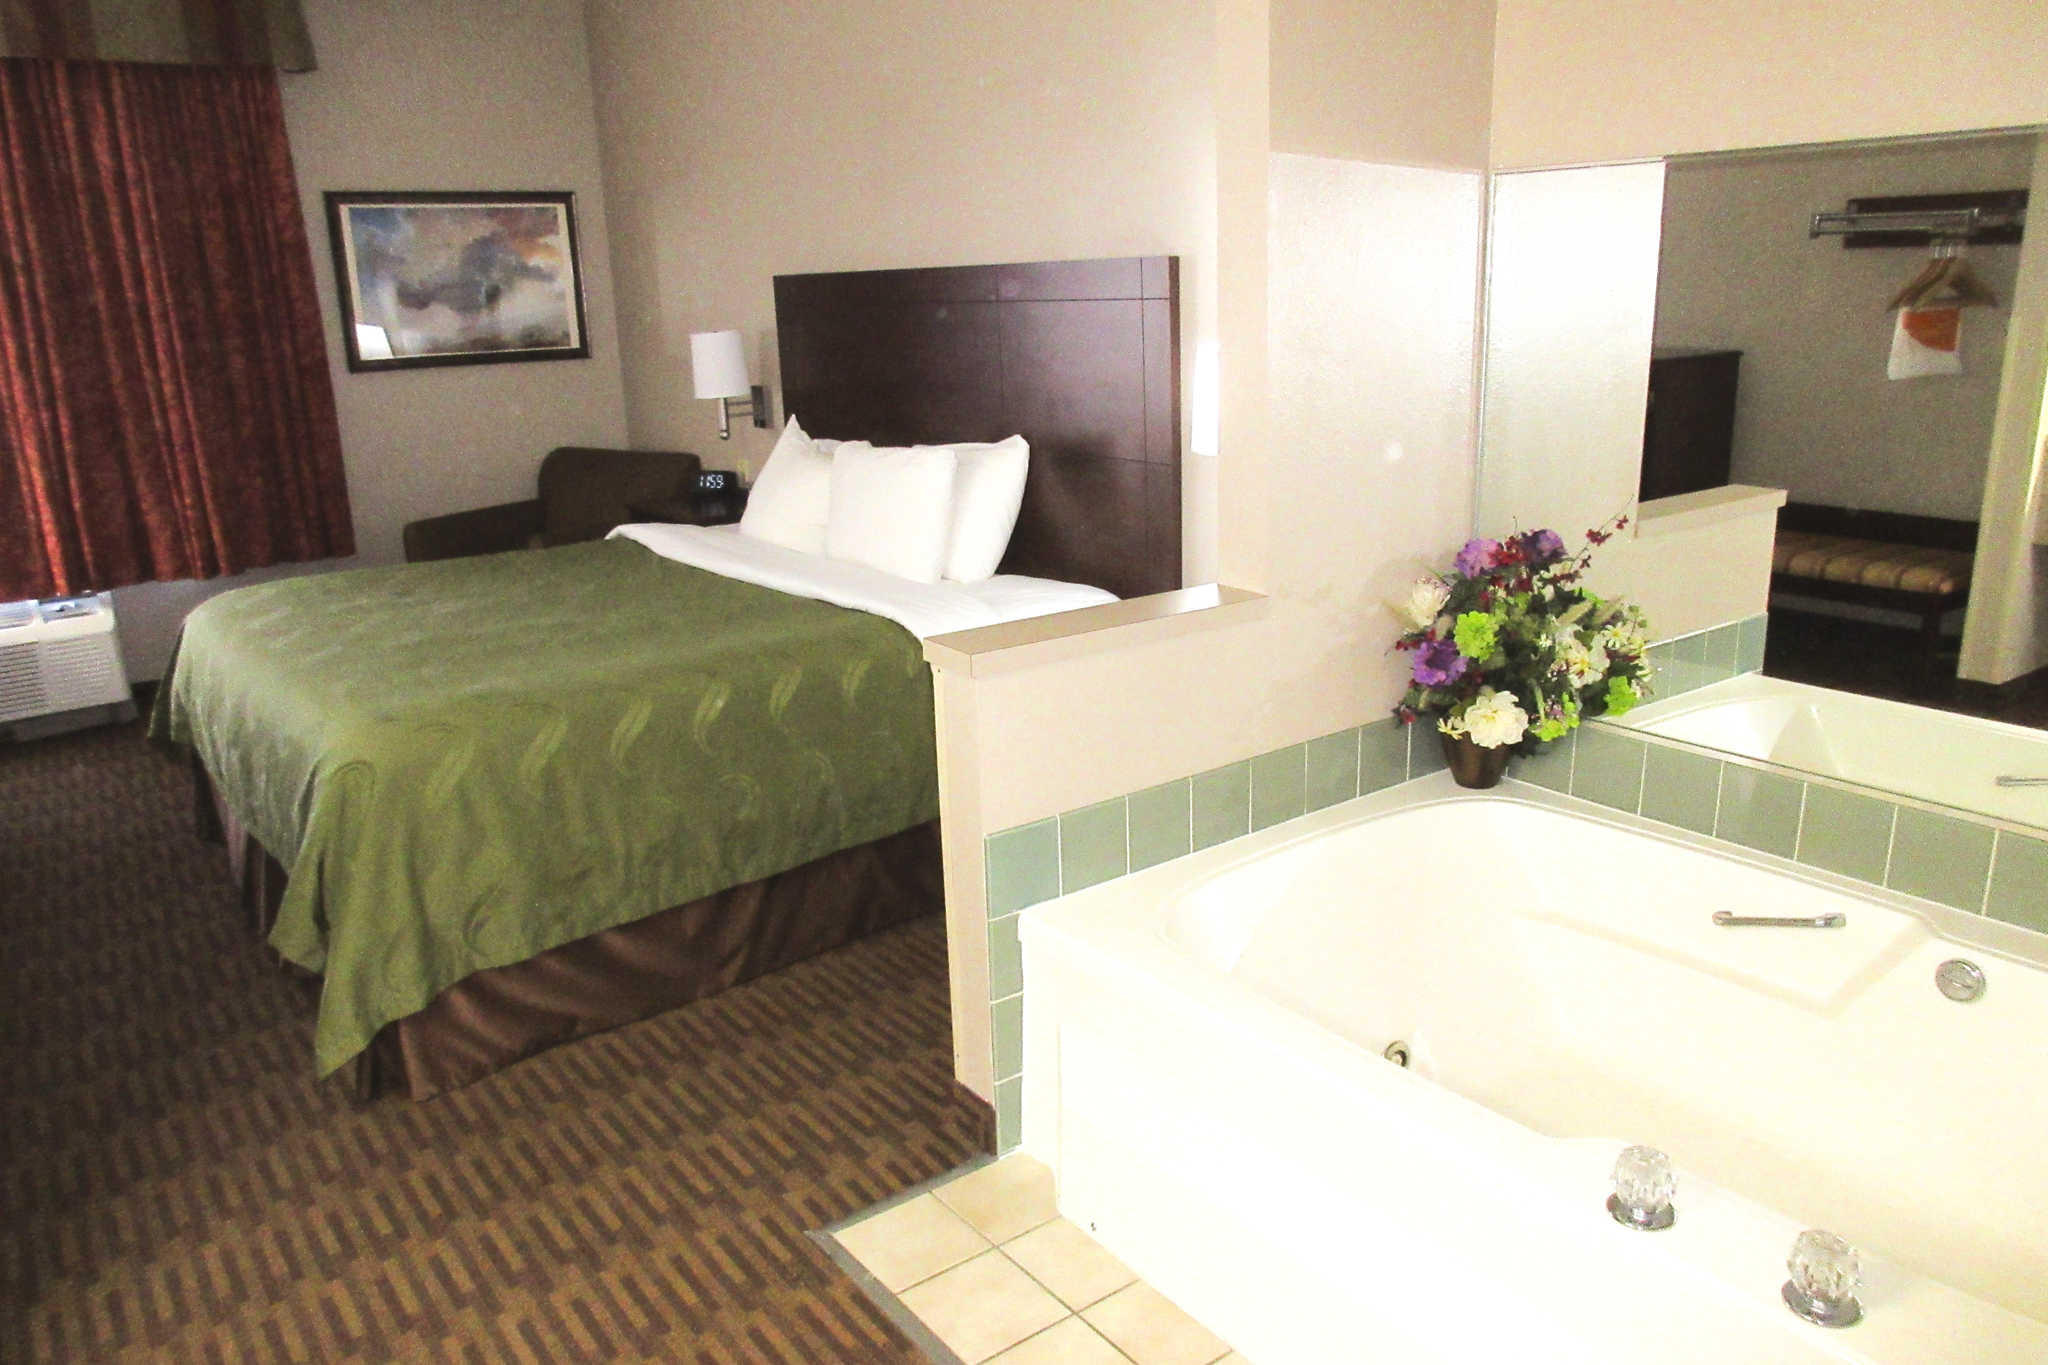 Quality Inn & Suites Lawrence - University Area image 18